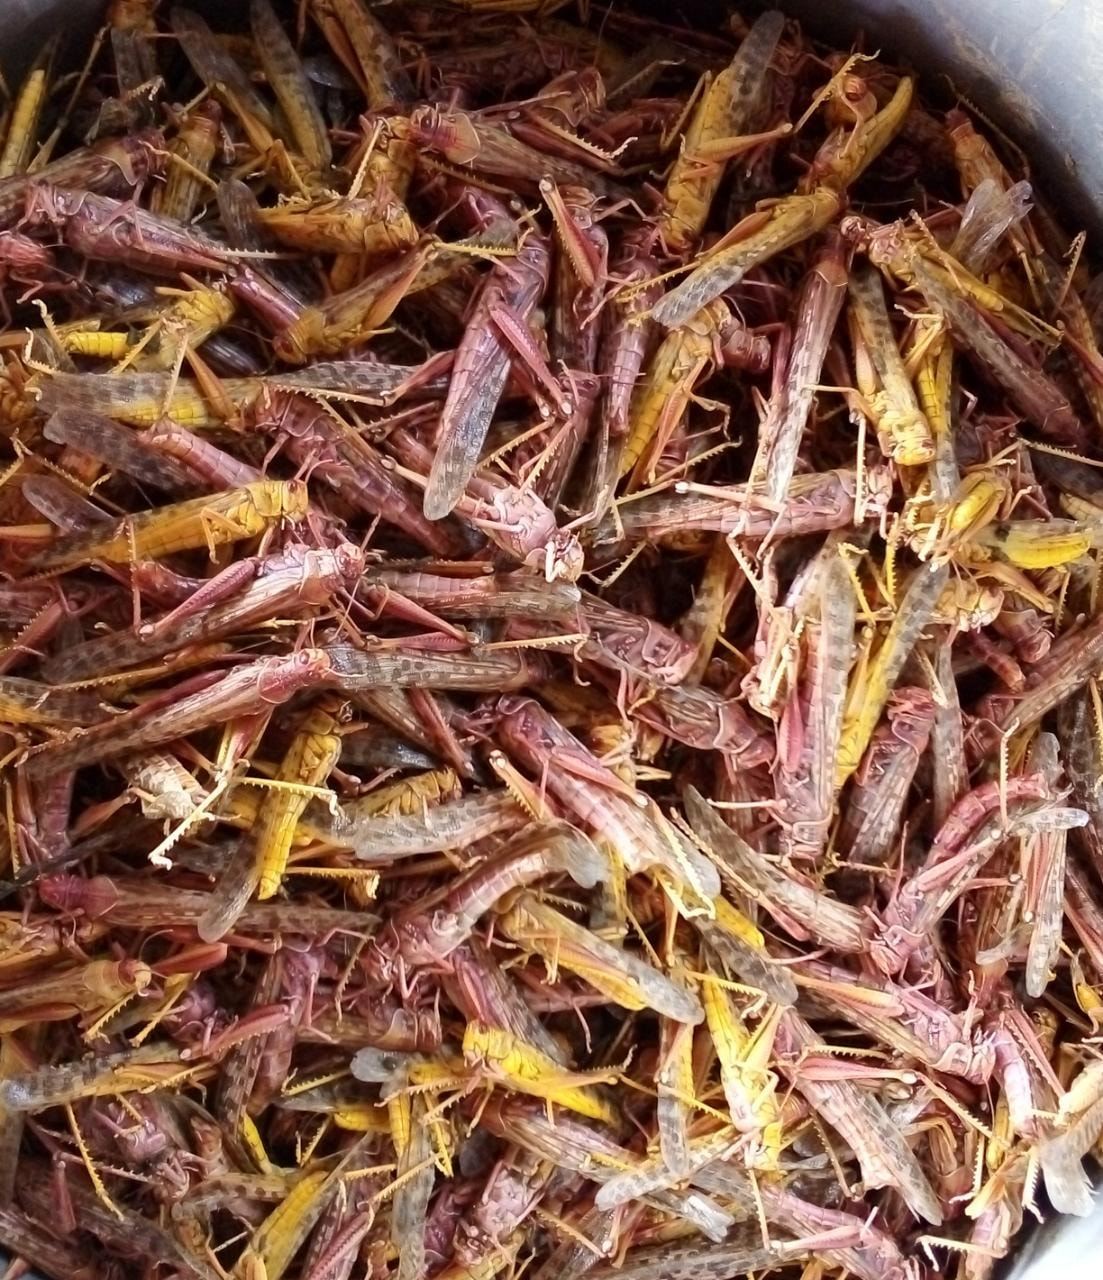 Locusts collected by a villager in a bucket.